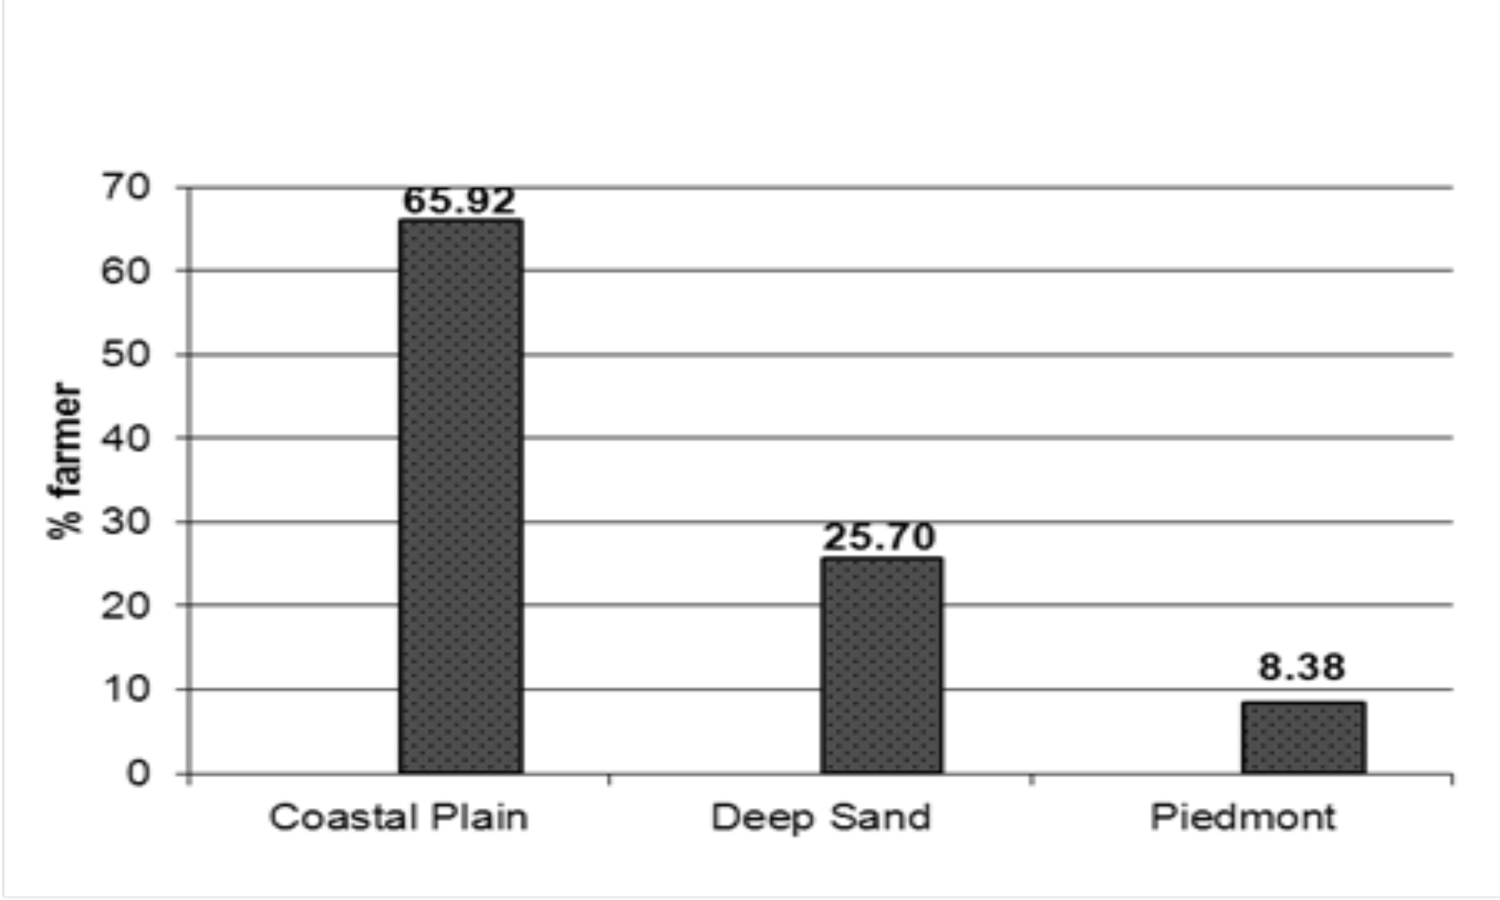 Figure 1. Percentage of farms with coastal plain, deep